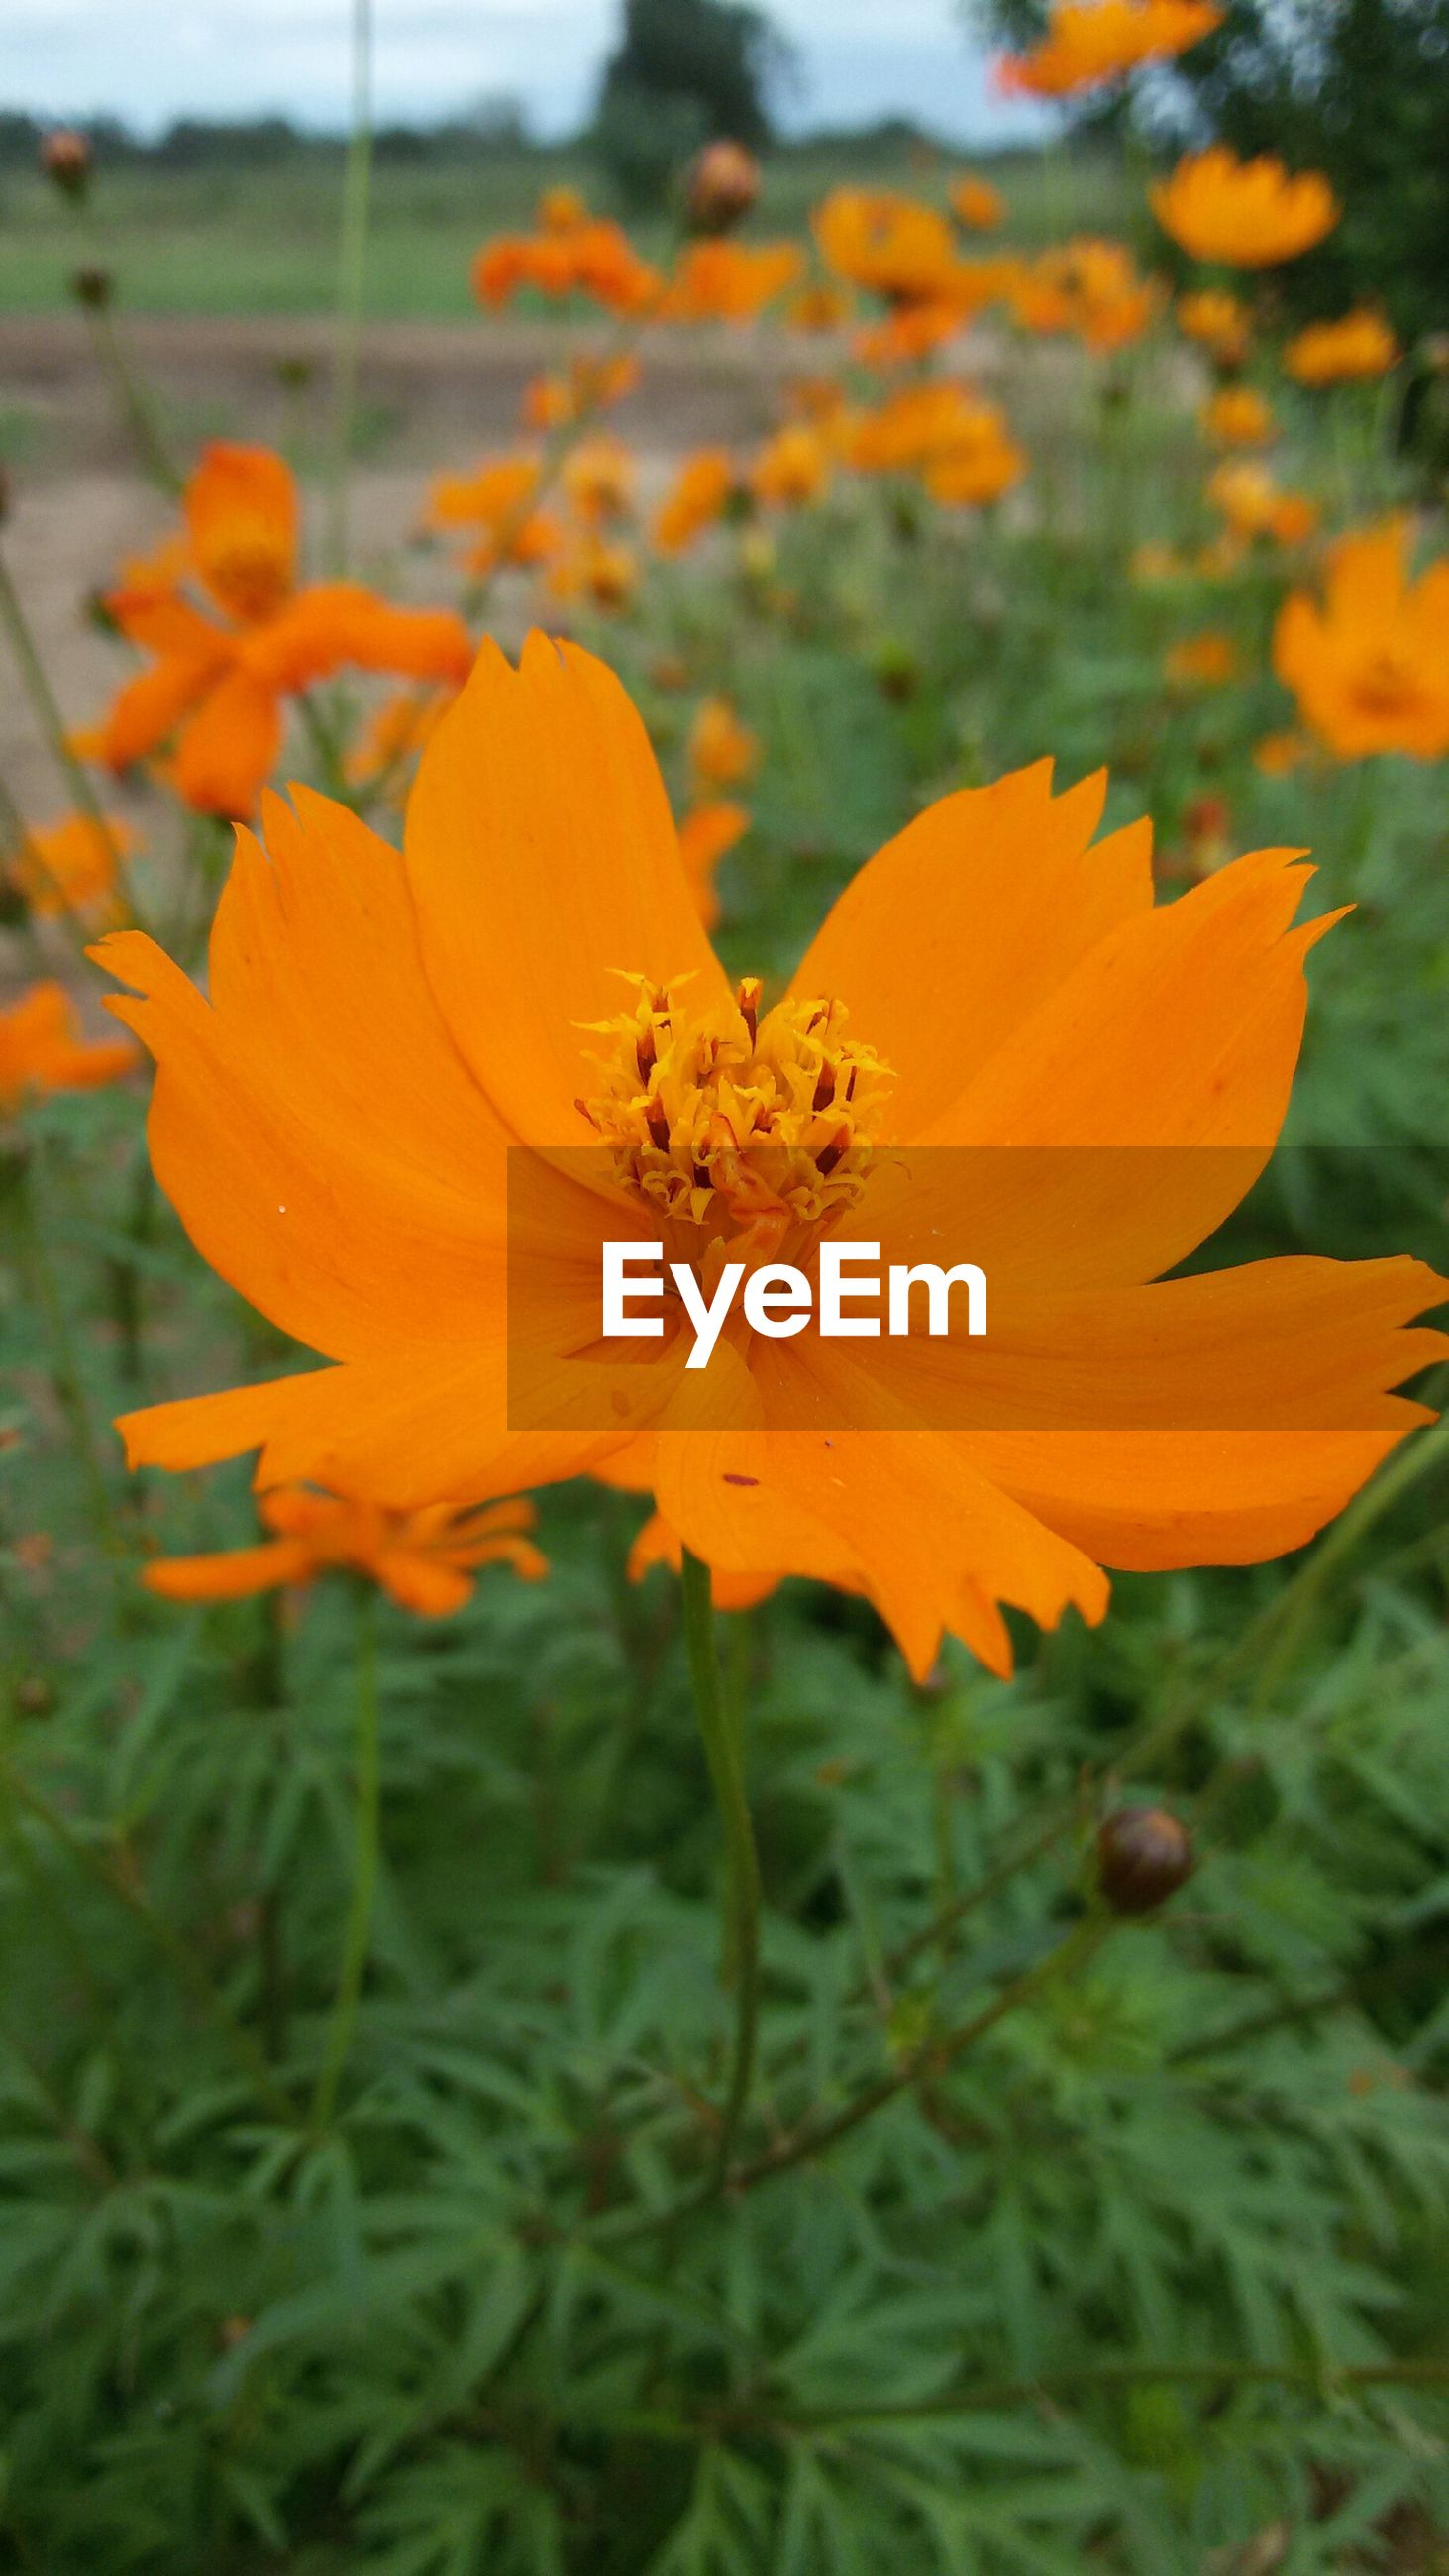 flower, petal, freshness, flower head, fragility, focus on foreground, growth, beauty in nature, orange color, close-up, blooming, nature, plant, yellow, pollen, in bloom, single flower, field, park - man made space, stamen